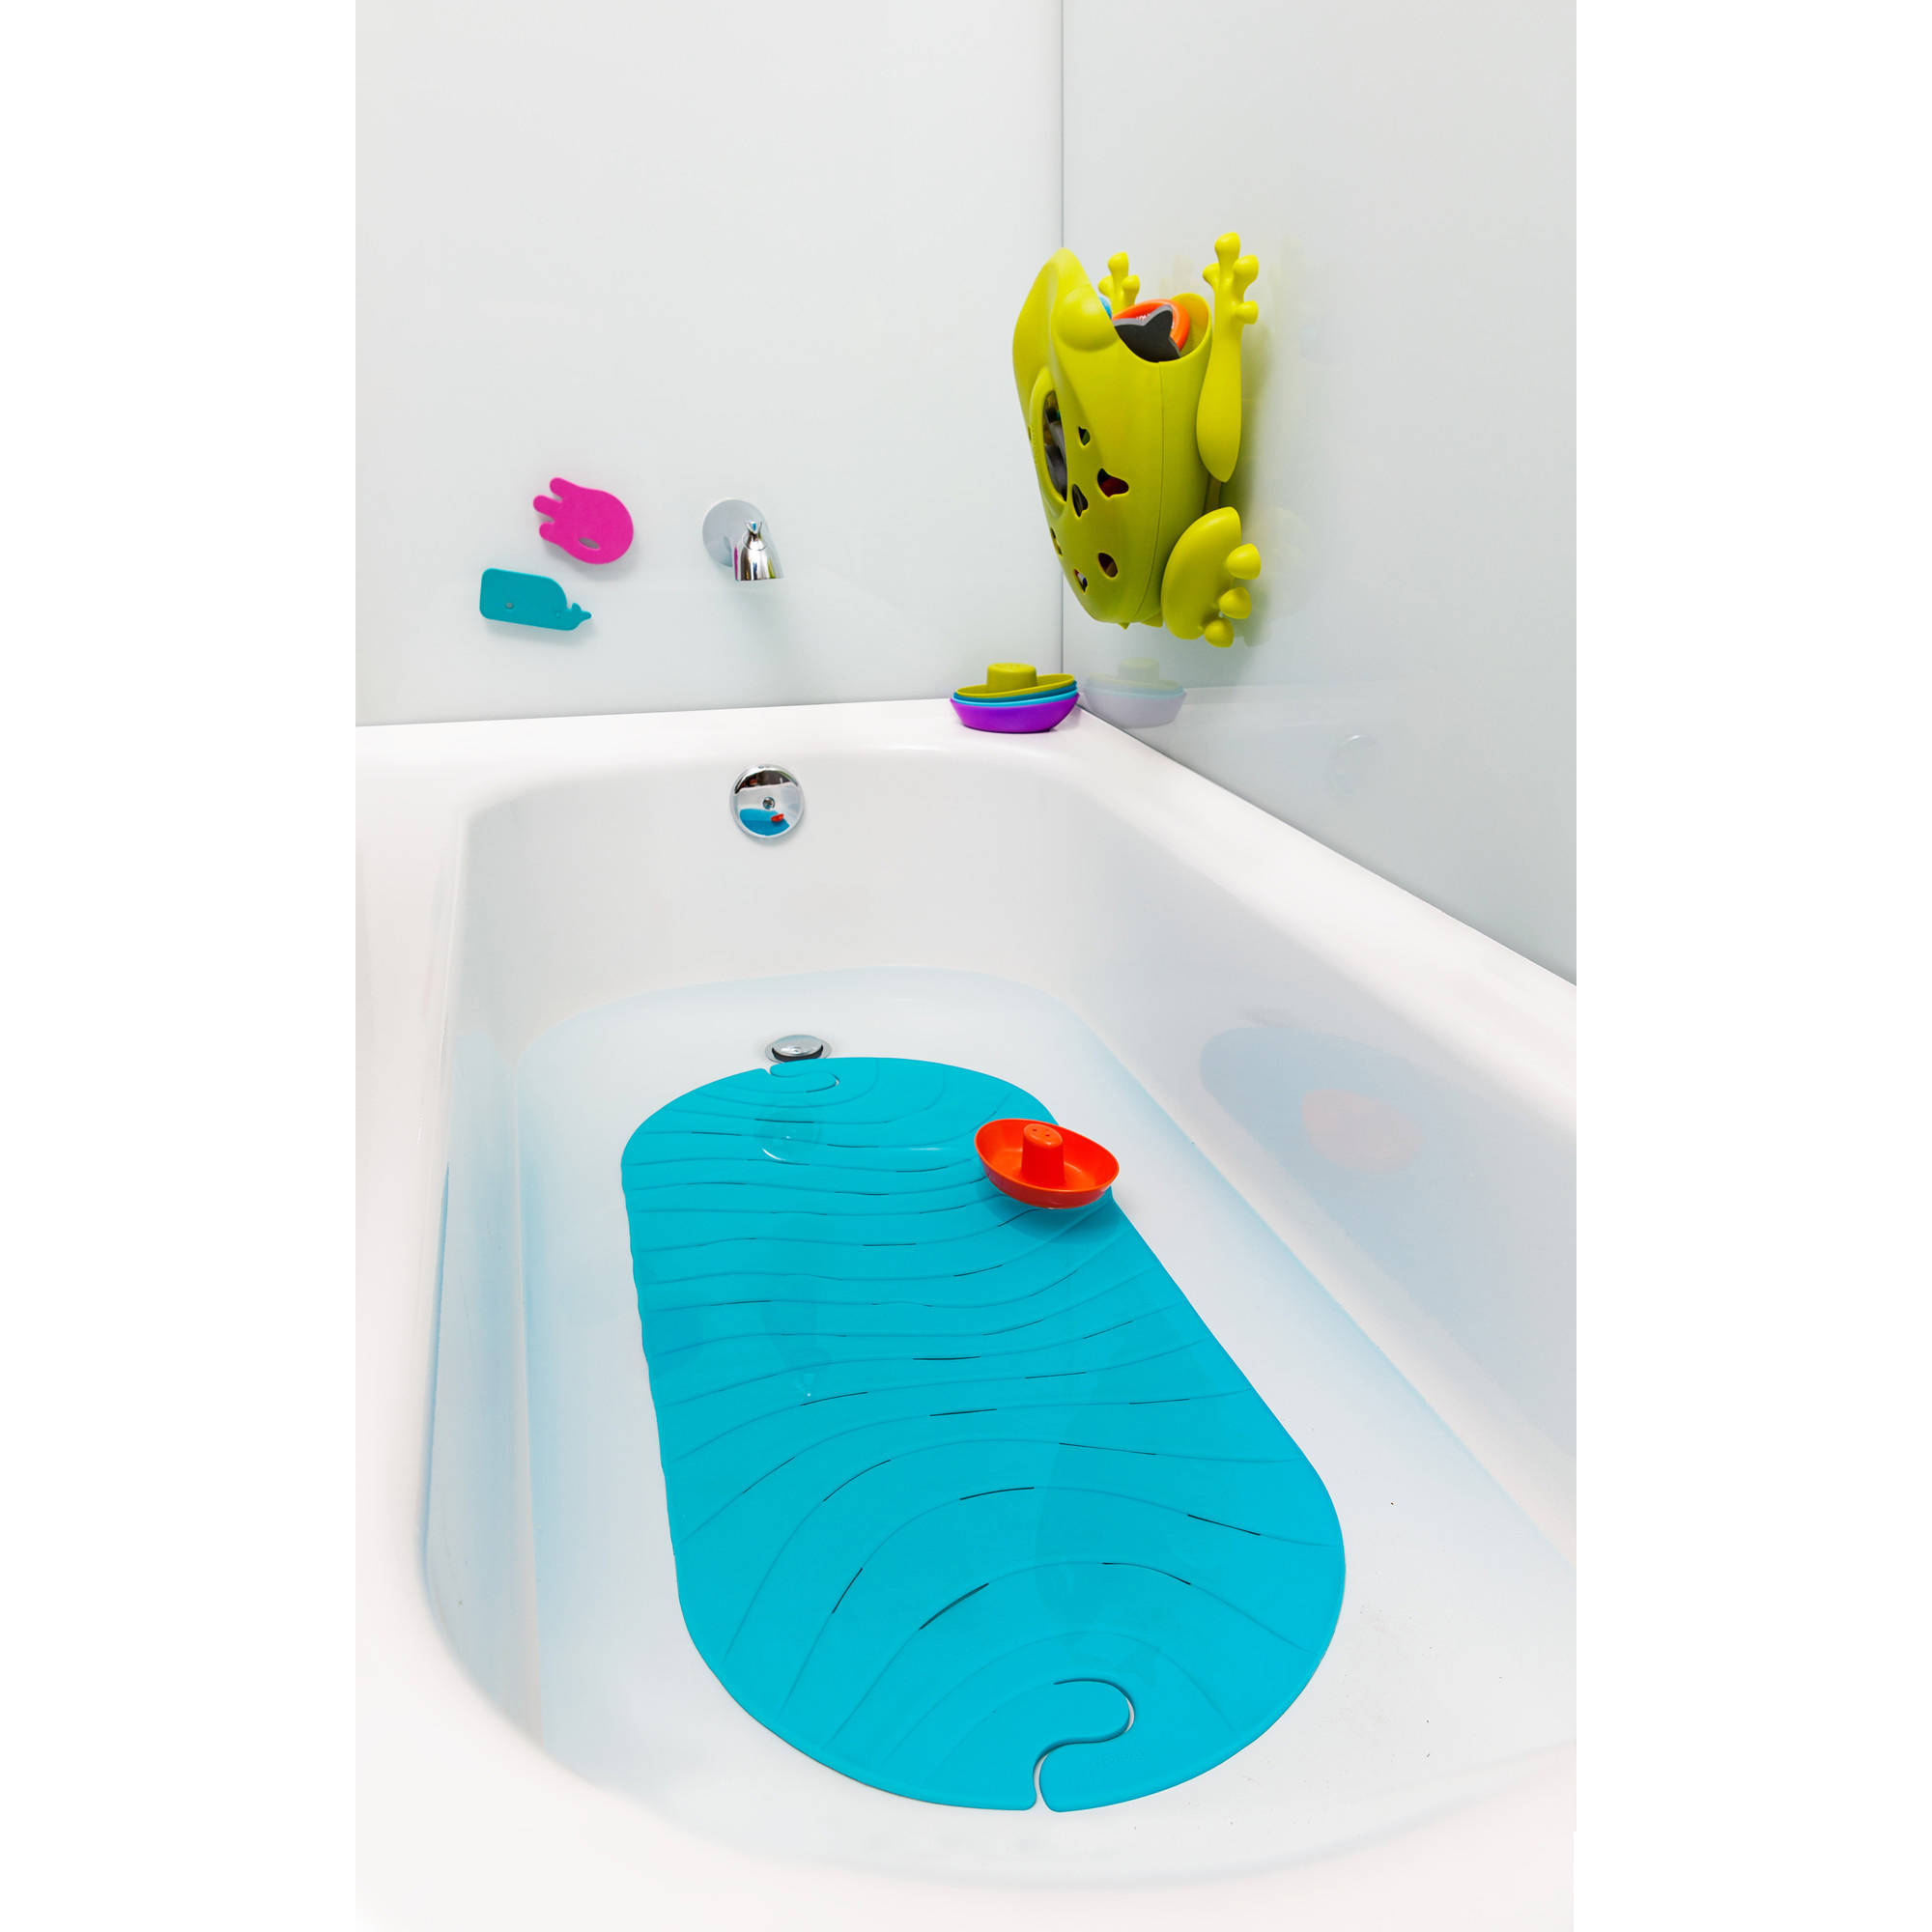 Boon Ripple Bathtub Mat Walmartcom